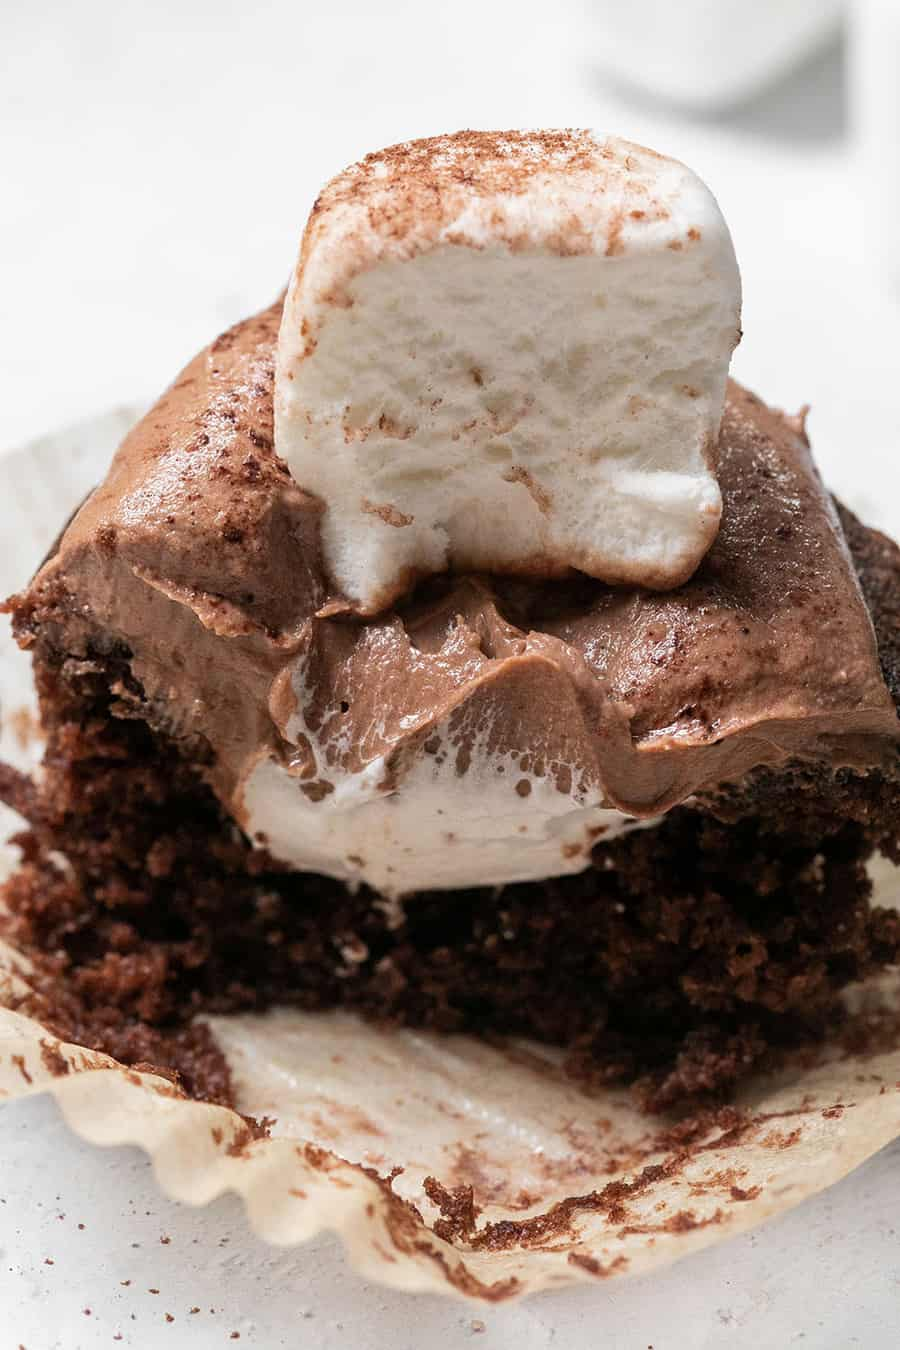 Hot chocolate cupcake with marshmallow filling and chocolate cupcake.